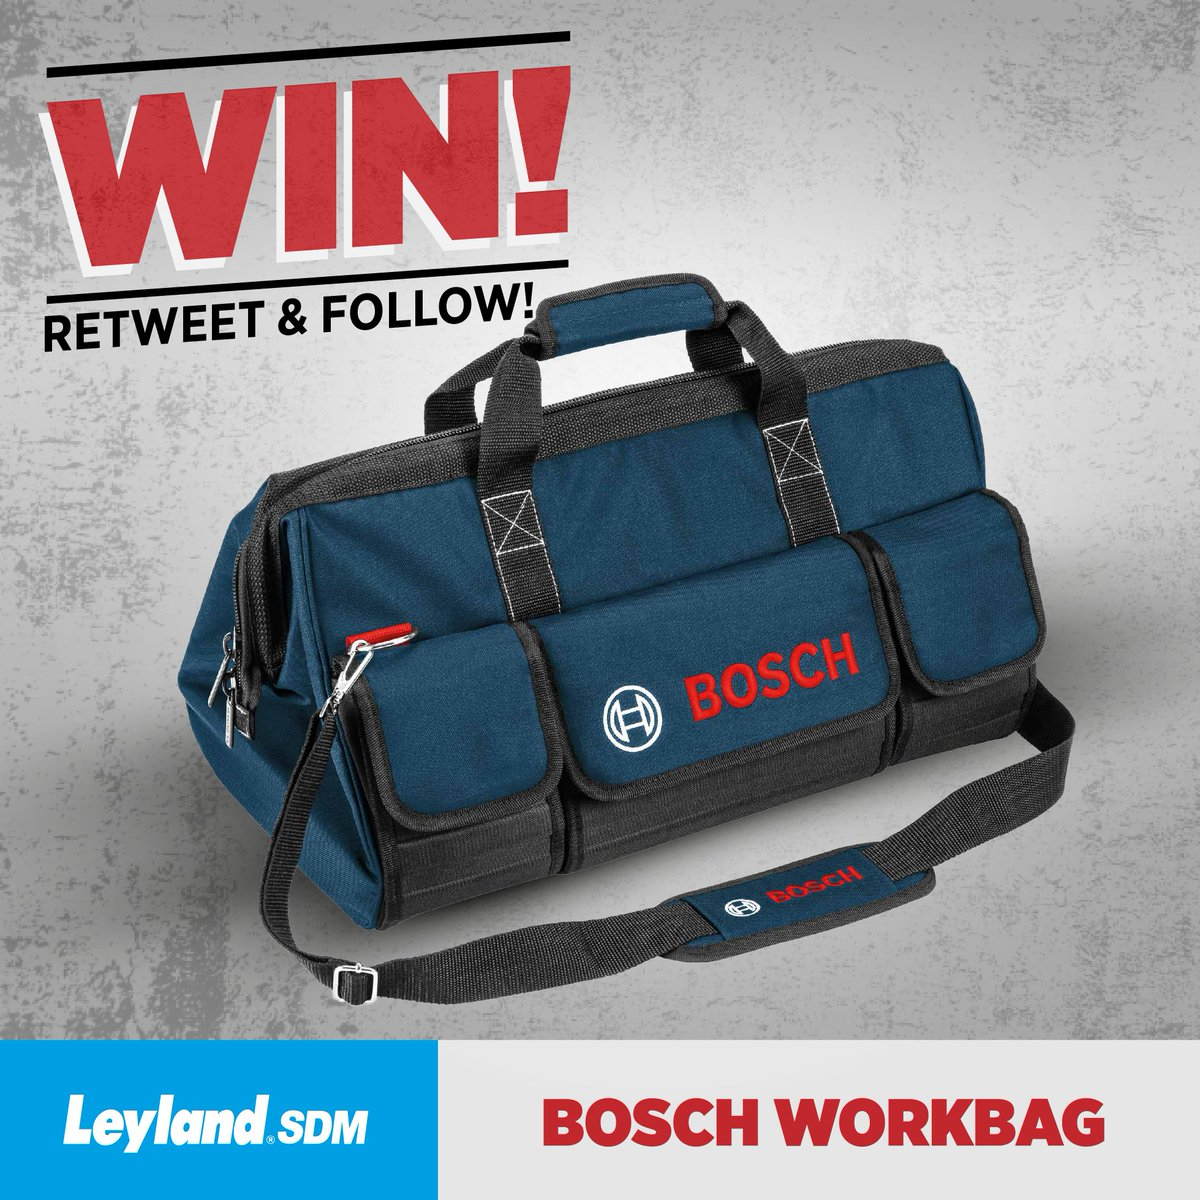 RT &amp; follow guys! Win this @BoschPro_UK workbag. Ends tomorrow at 5pm!! #Power #Tools #DIY #London #Decorating #Win #Prize #WednesdayWisdom<br>http://pic.twitter.com/CTThMujSab